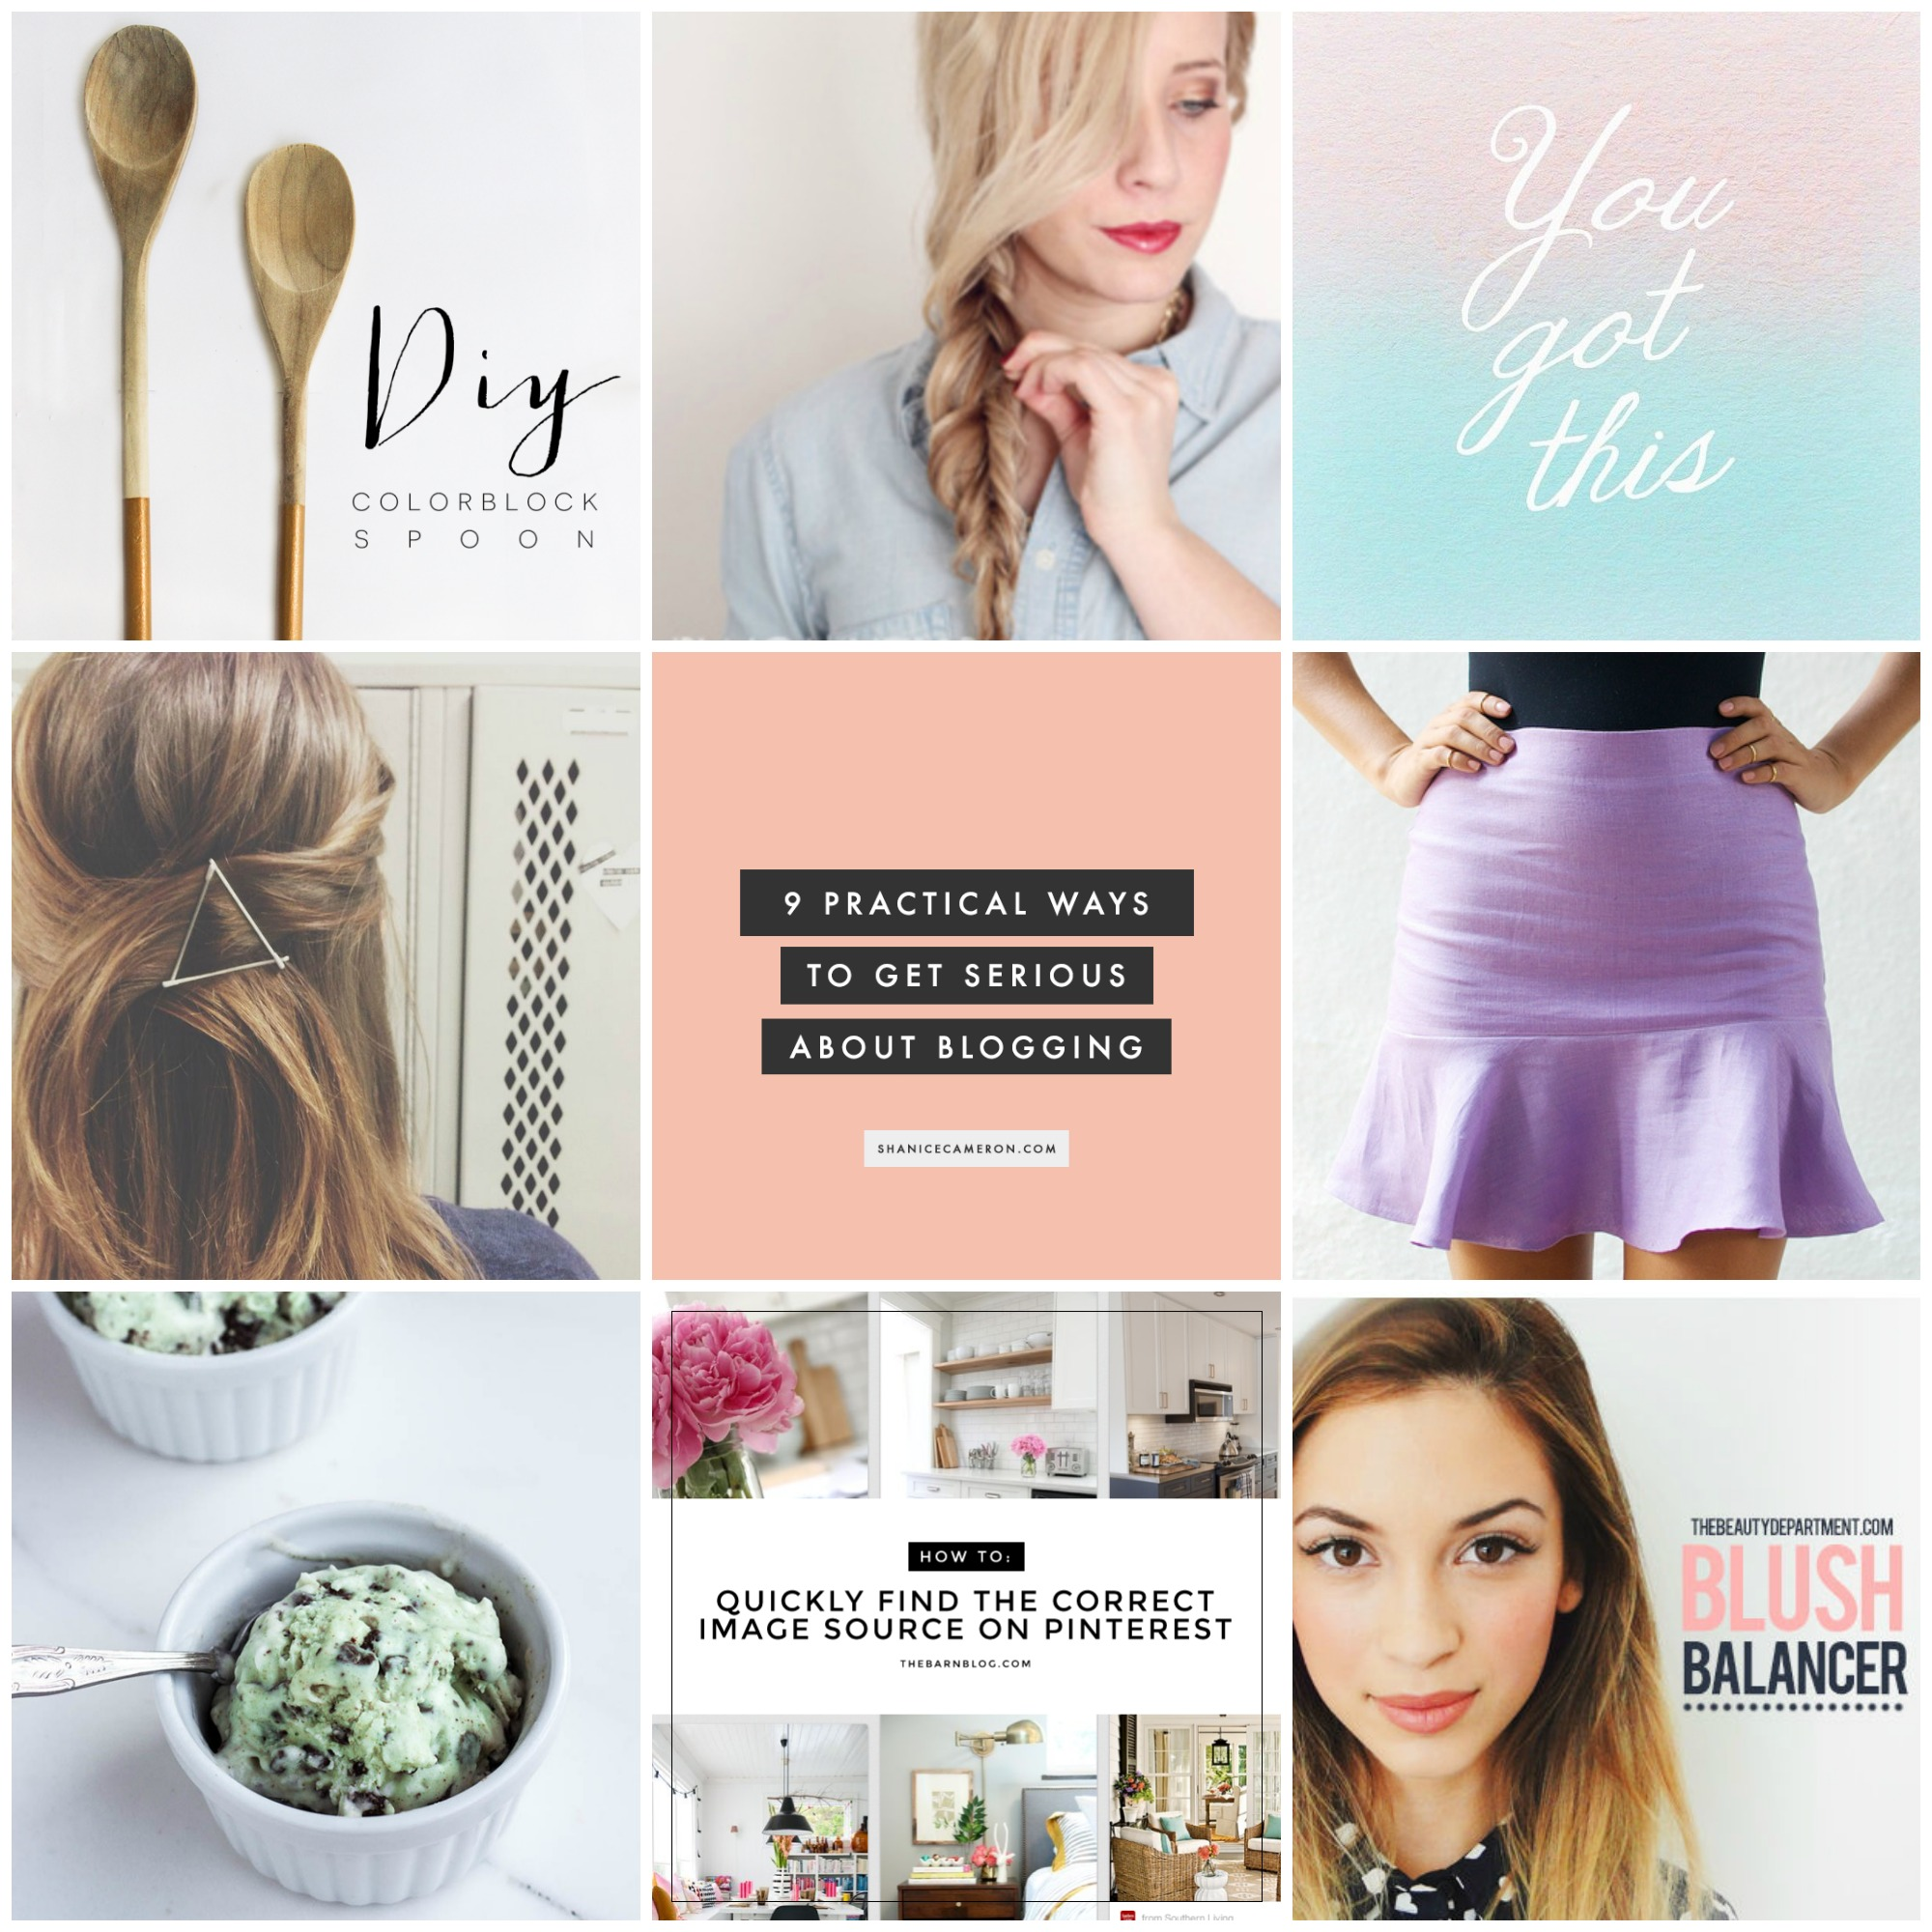 Pinterest Favorites, The Beauty Department, SheKnows, Alyssa Barnes Web Design, Vegan Ice Cream Recipe